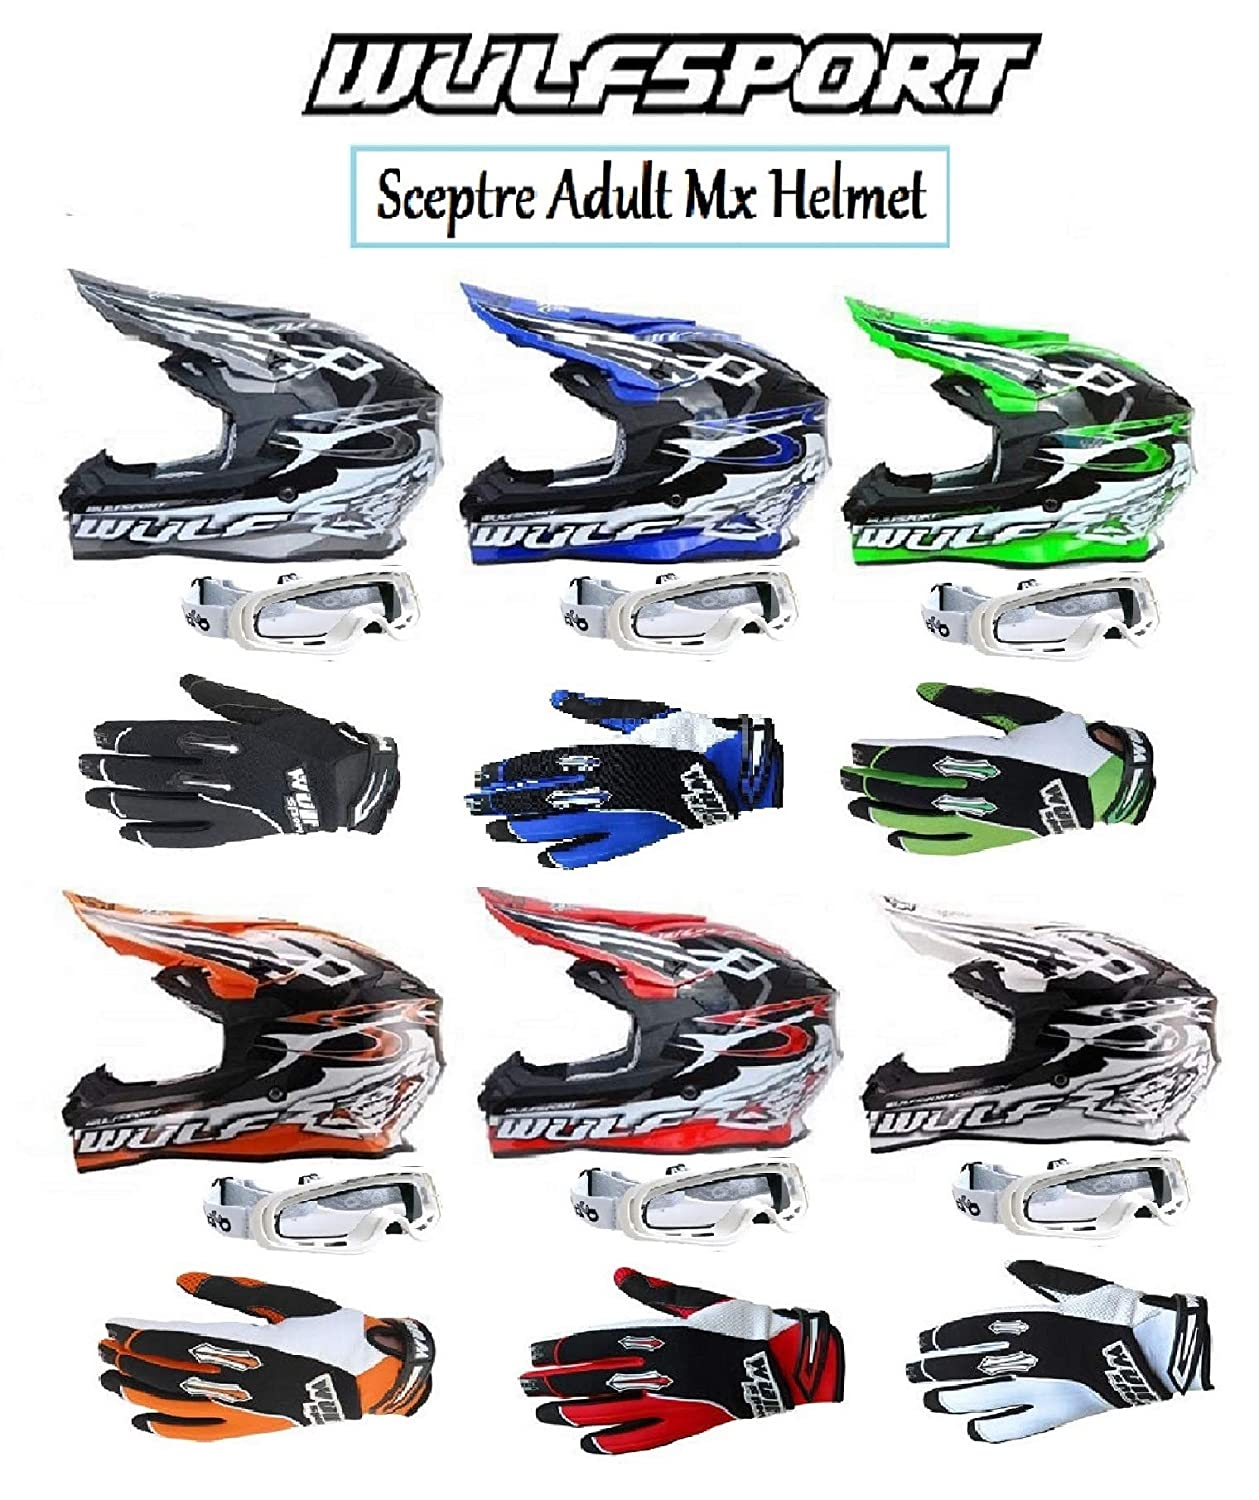 WHITE GOGGLE MOTORBIKE WULFSPORT SCEPTRE ADULT MX HELMET With Motorcycle Off Road Quad PIT ATV Sports Enduro ADULT WULF STRATOS GLOVES